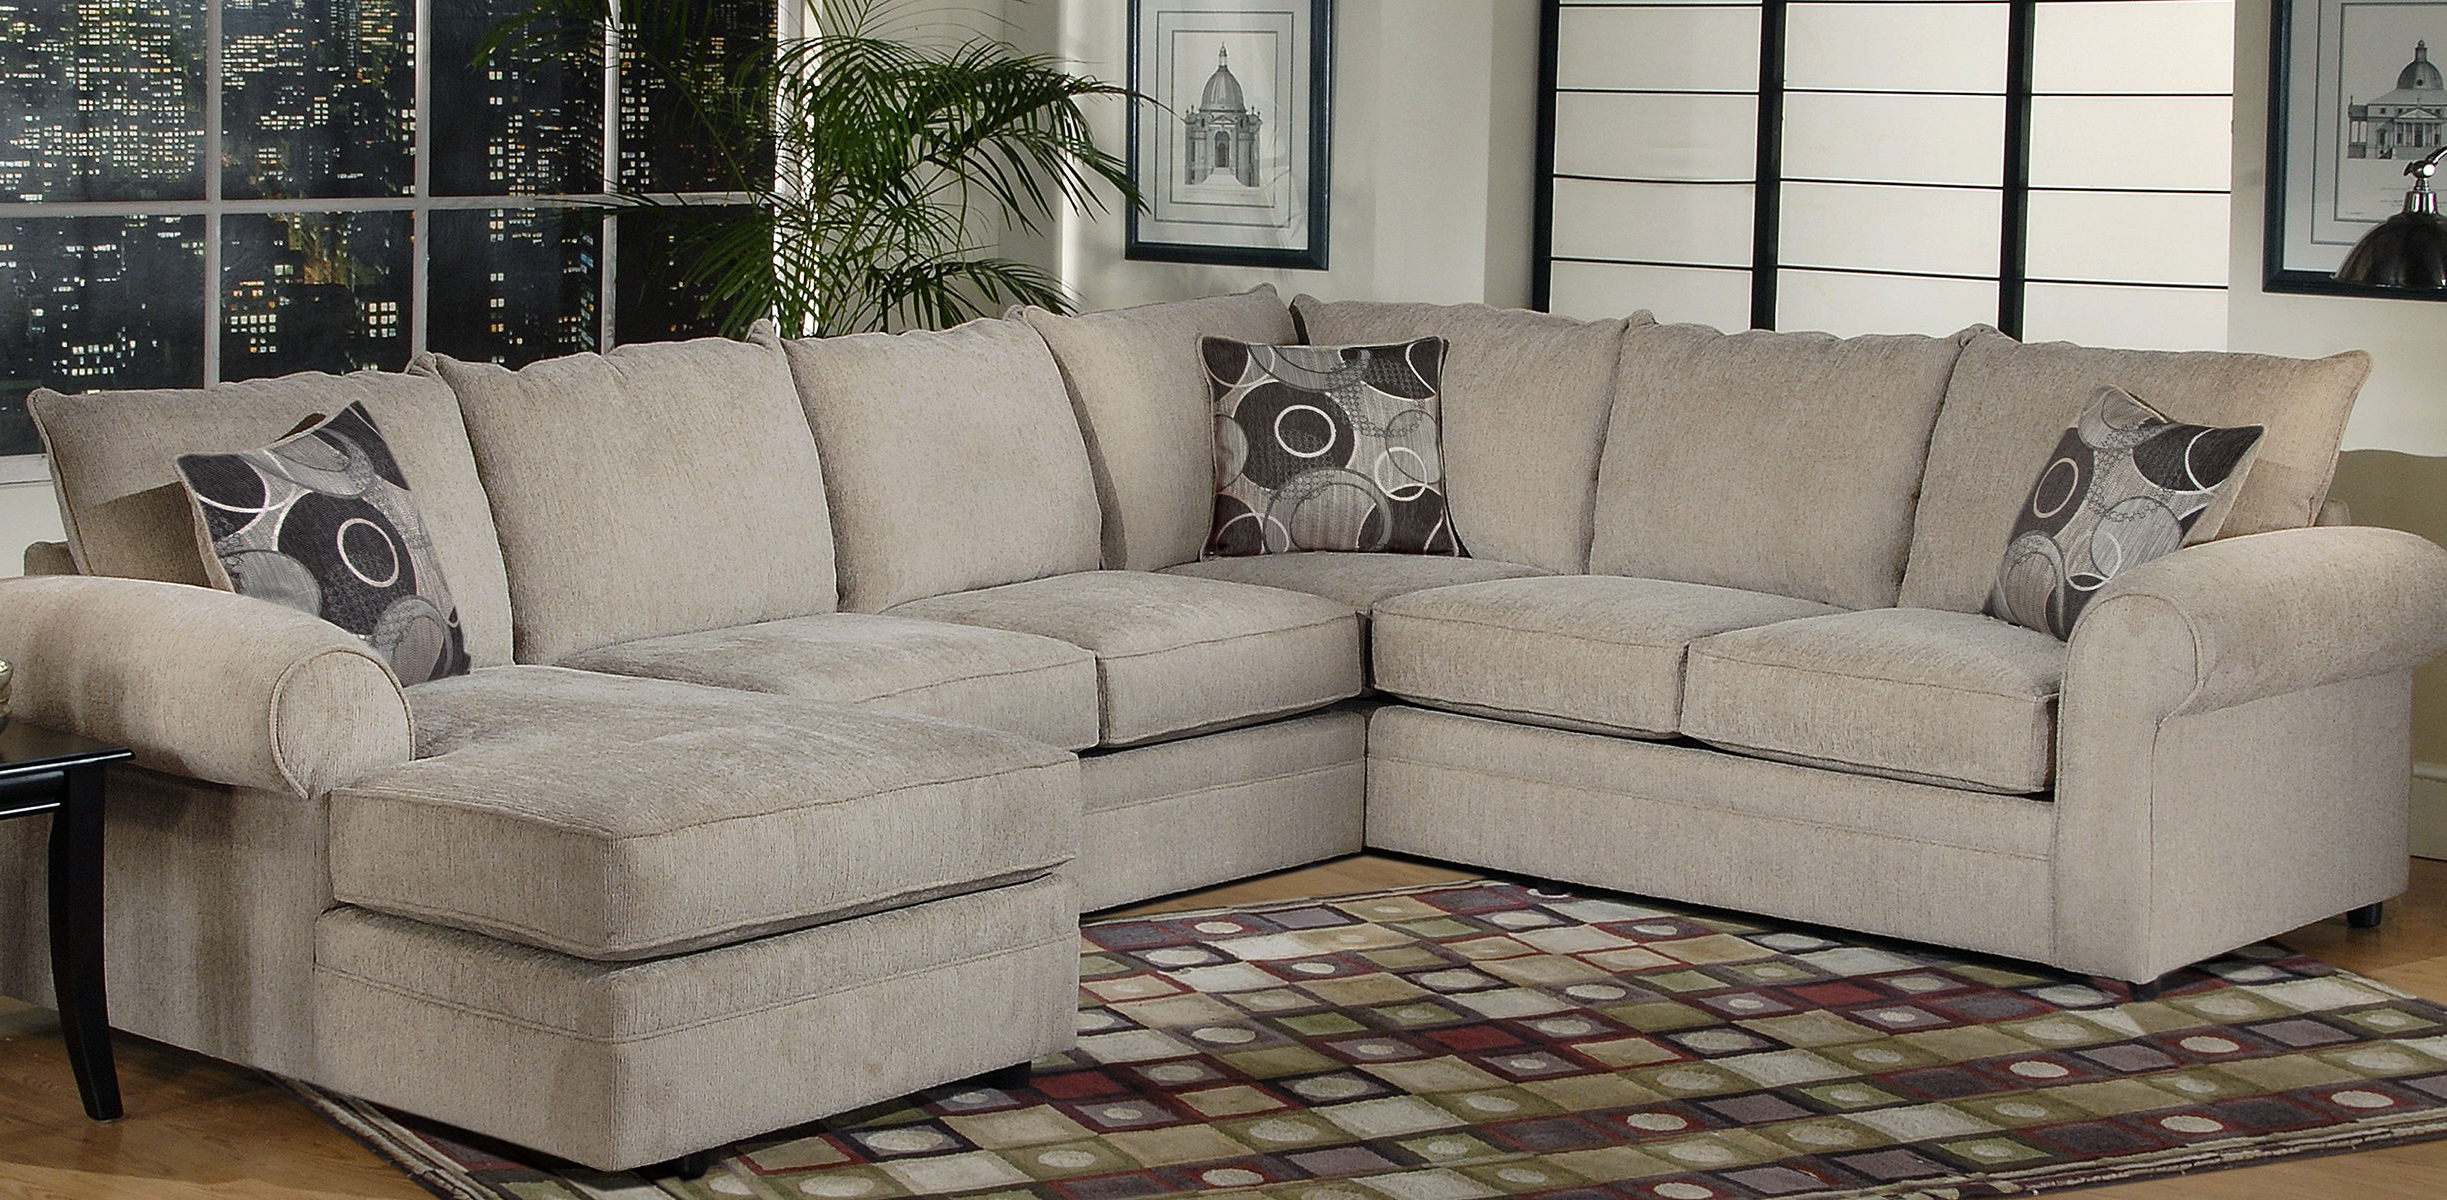 Famous Serta Upholstery Sectionals: Ashas Spiritual Essence With Harmon Roll Arm Sectional Sofas (View 1 of 20)